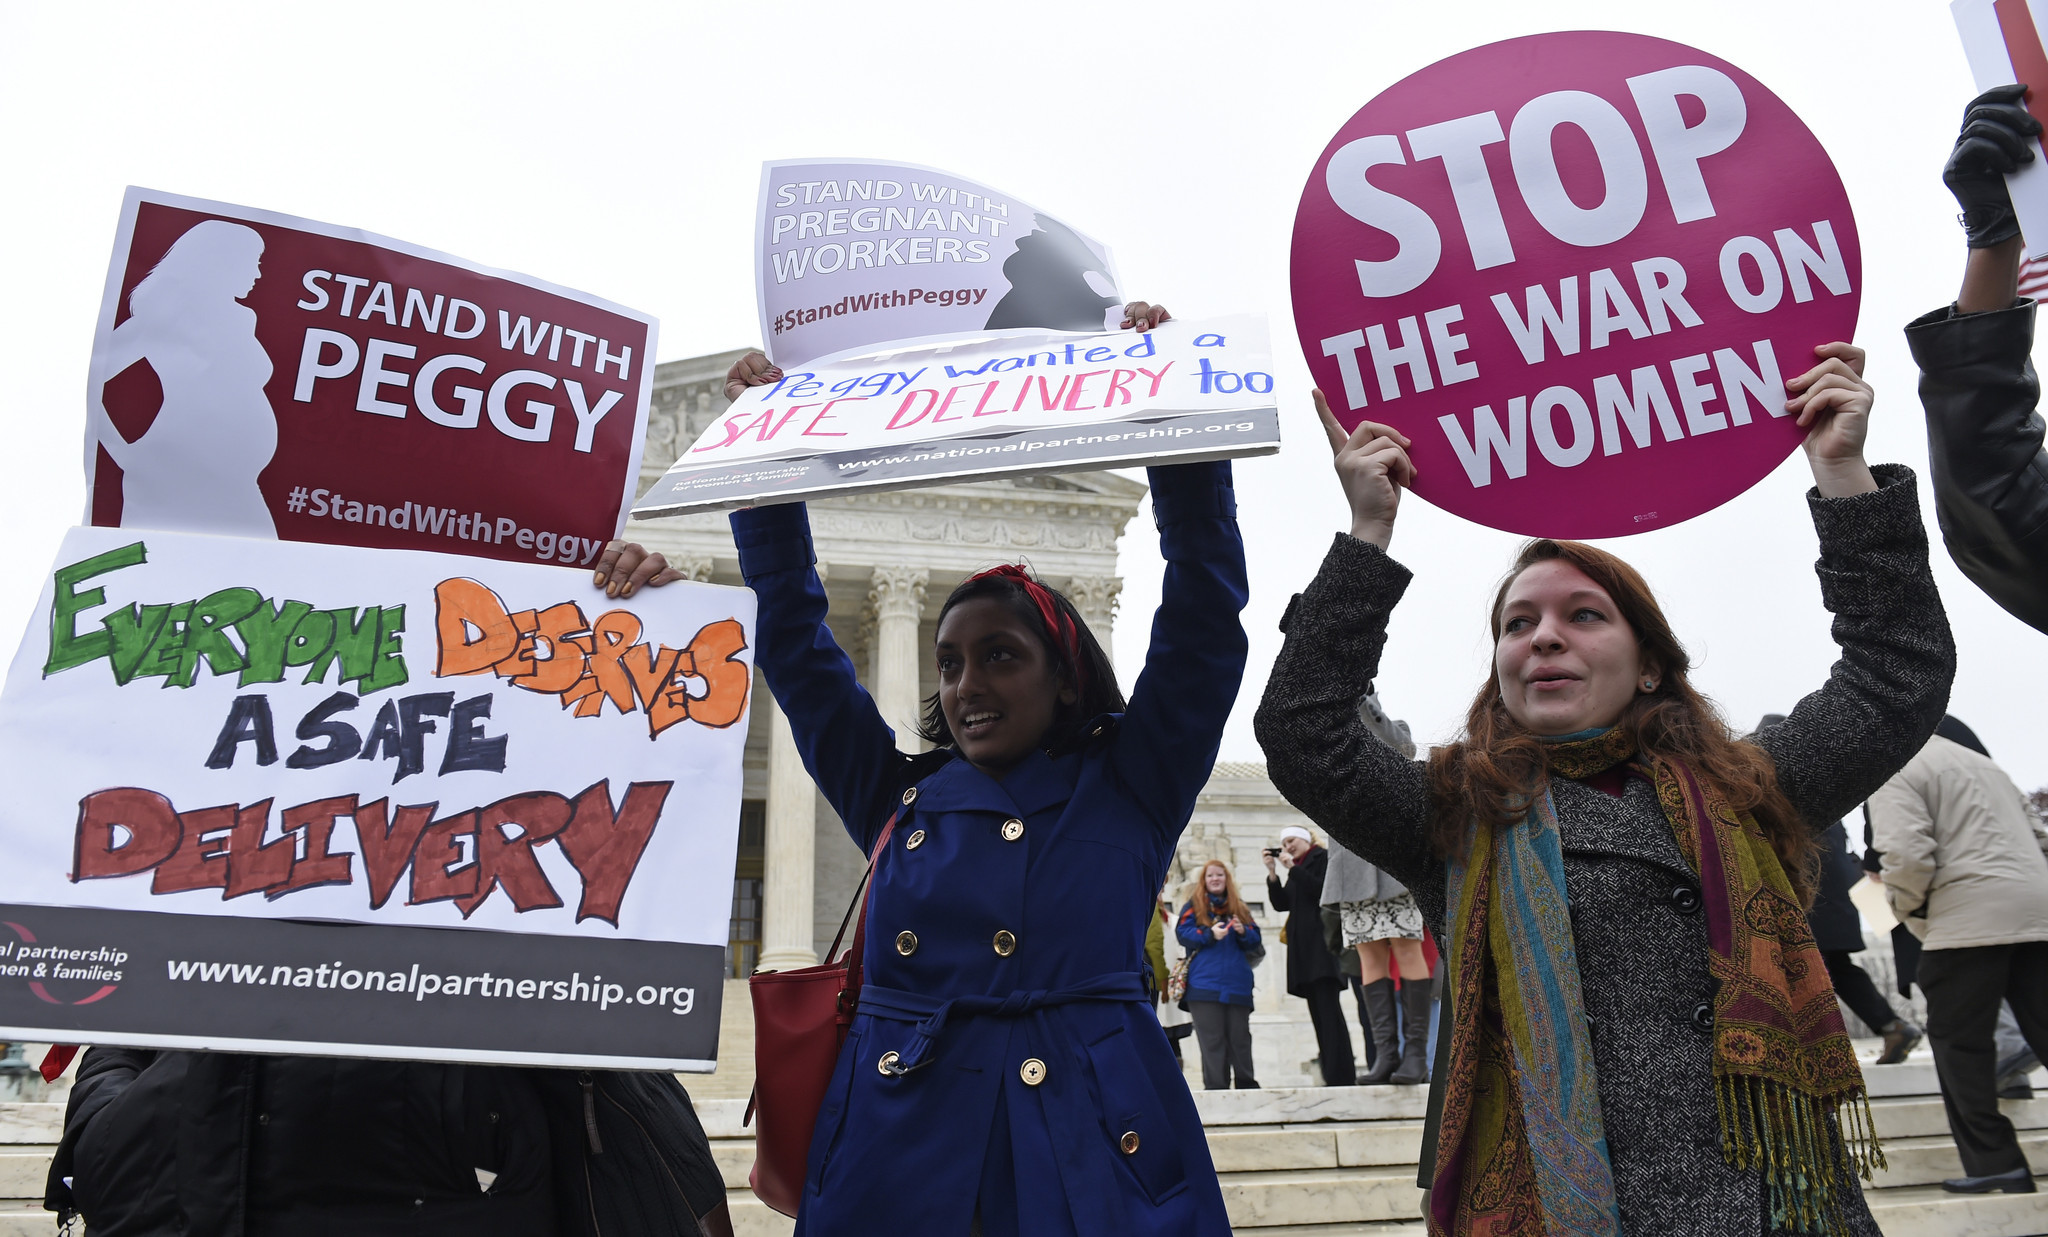 Supreme Court should affirm the rights of pregnant workers